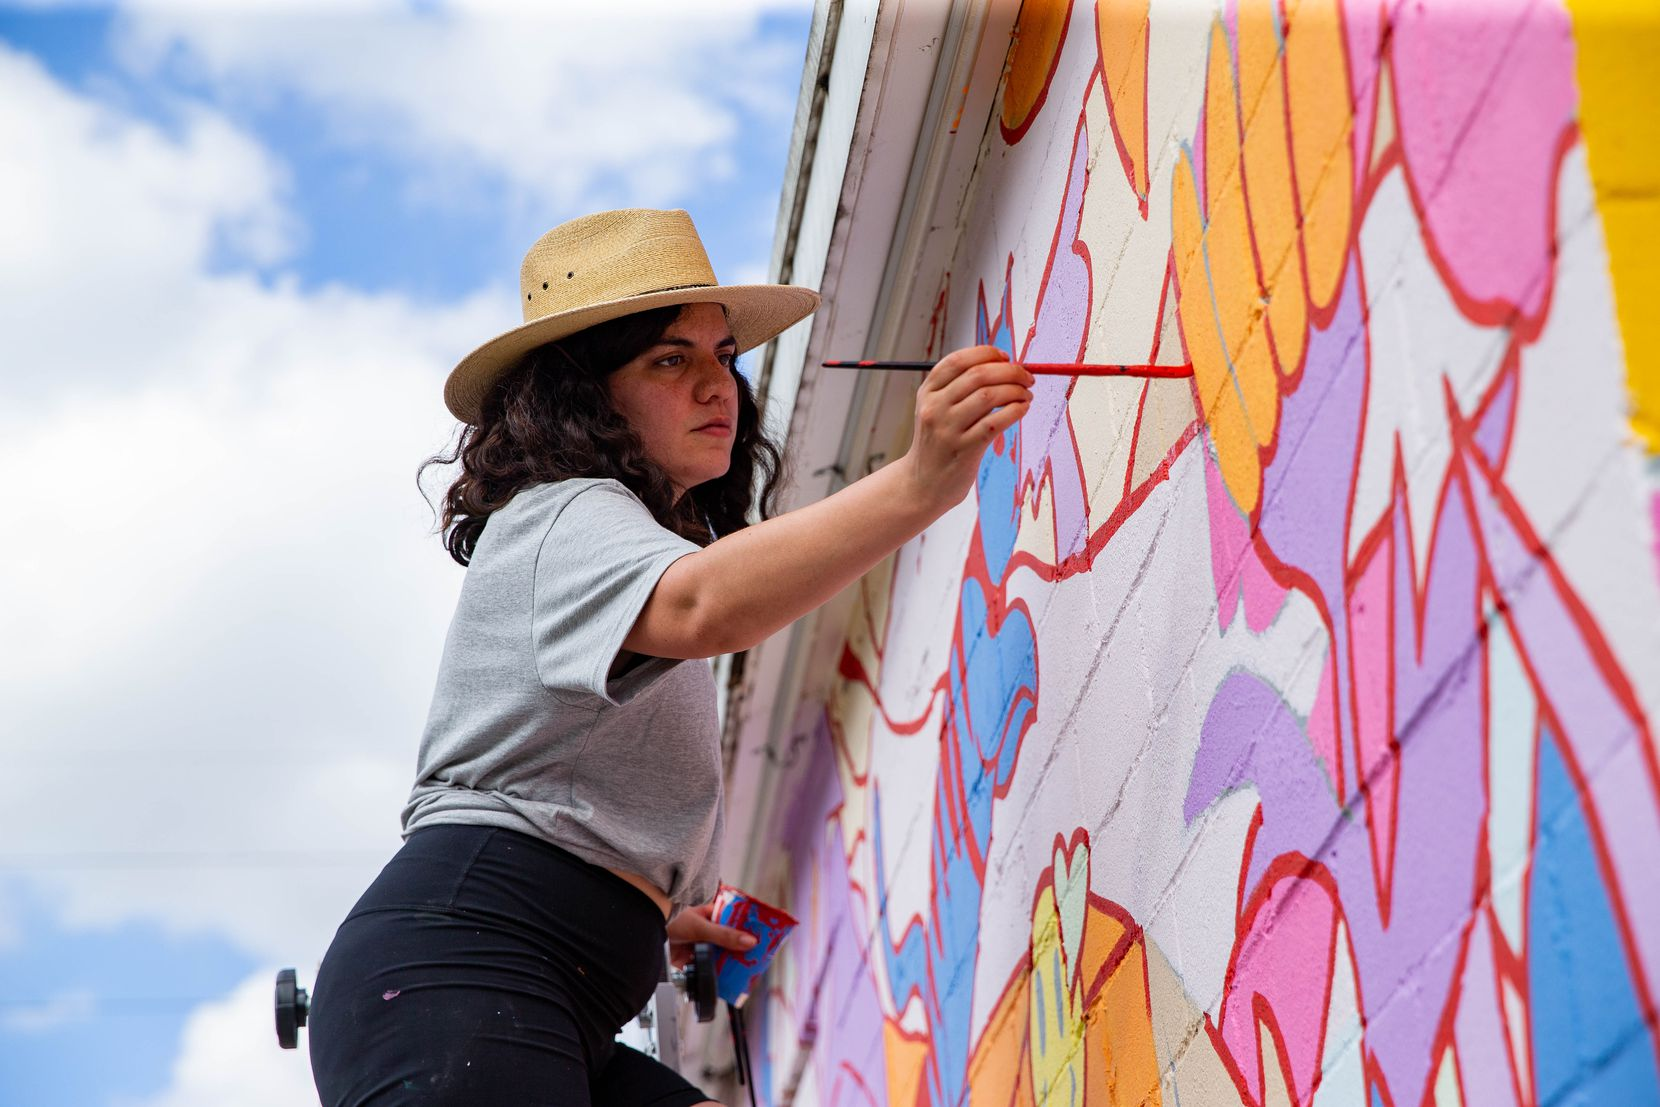 Artist Stephanie Sanz works on a mural with artist Brent Ozaeta (not pictured) as part of The Wild West Mural Fest in Dallas on Thursday, Oct. 22, 2020. The mural was inspired by a woman experiencing homelessness who walked by Sanz's apartment with a cat on a leash and plushies on her backpack.